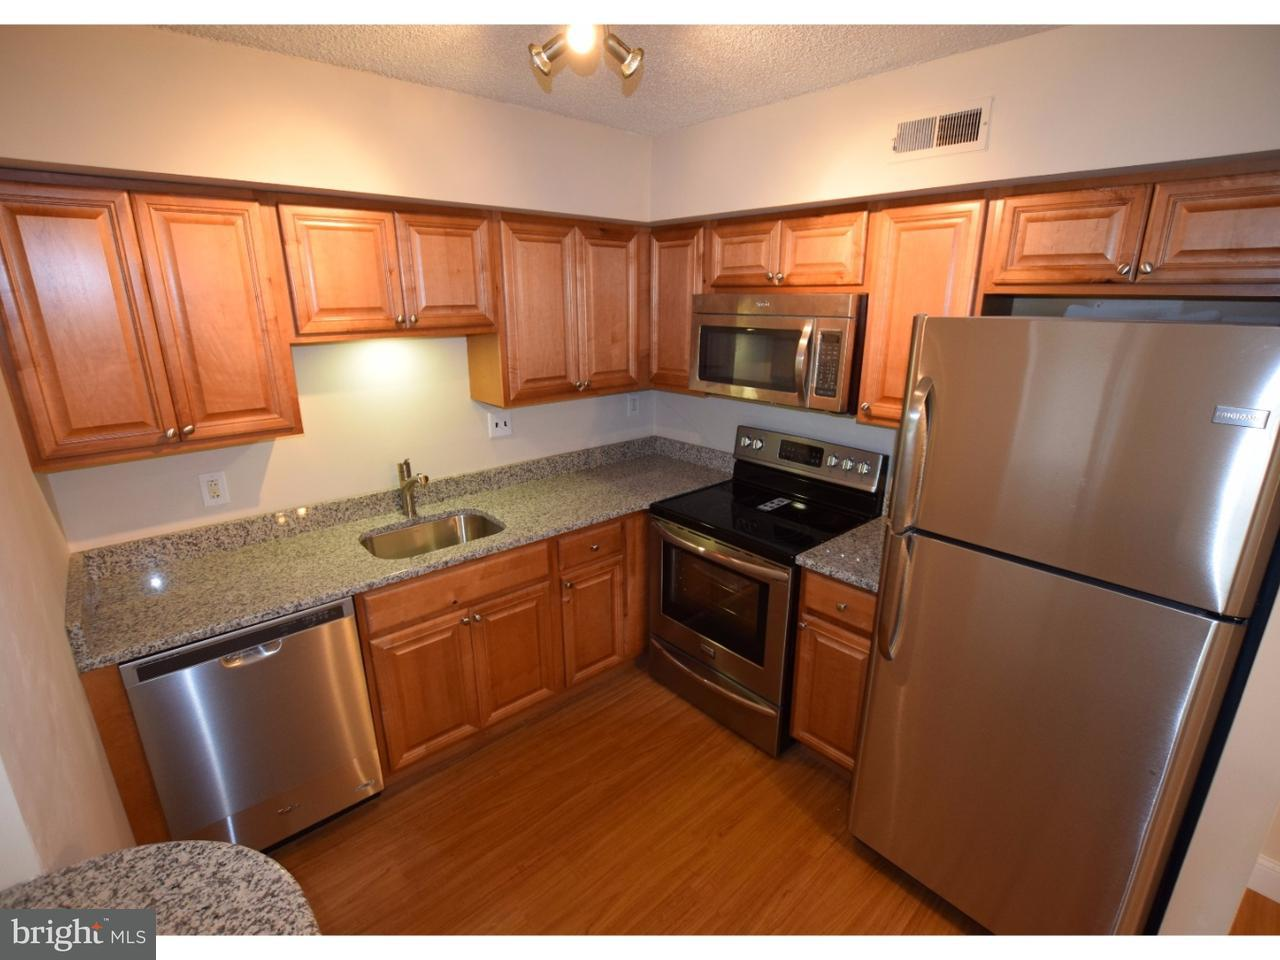 Townhouse for Rent at 5200 HILLTOP Drive Brookhaven, Pennsylvania 19015 United States